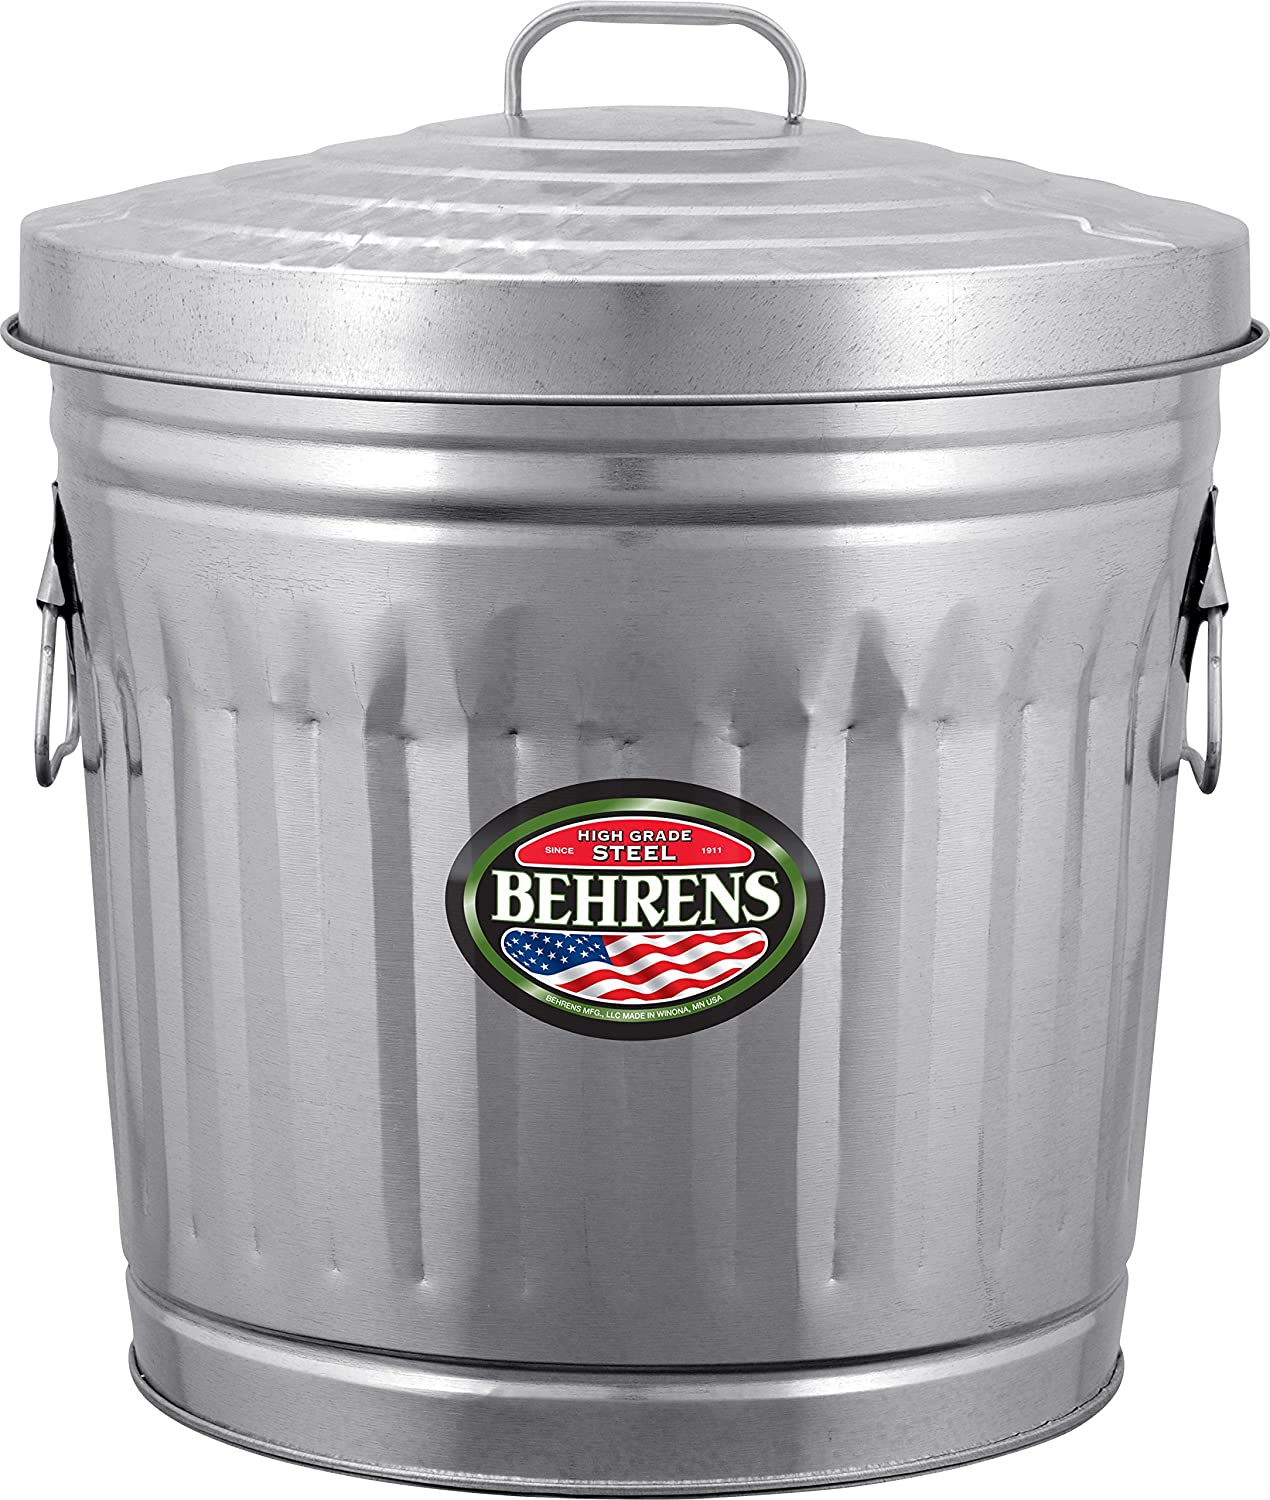 Aluminium Garbage Cans : Gallon locking lid behrens home depot insured by ross